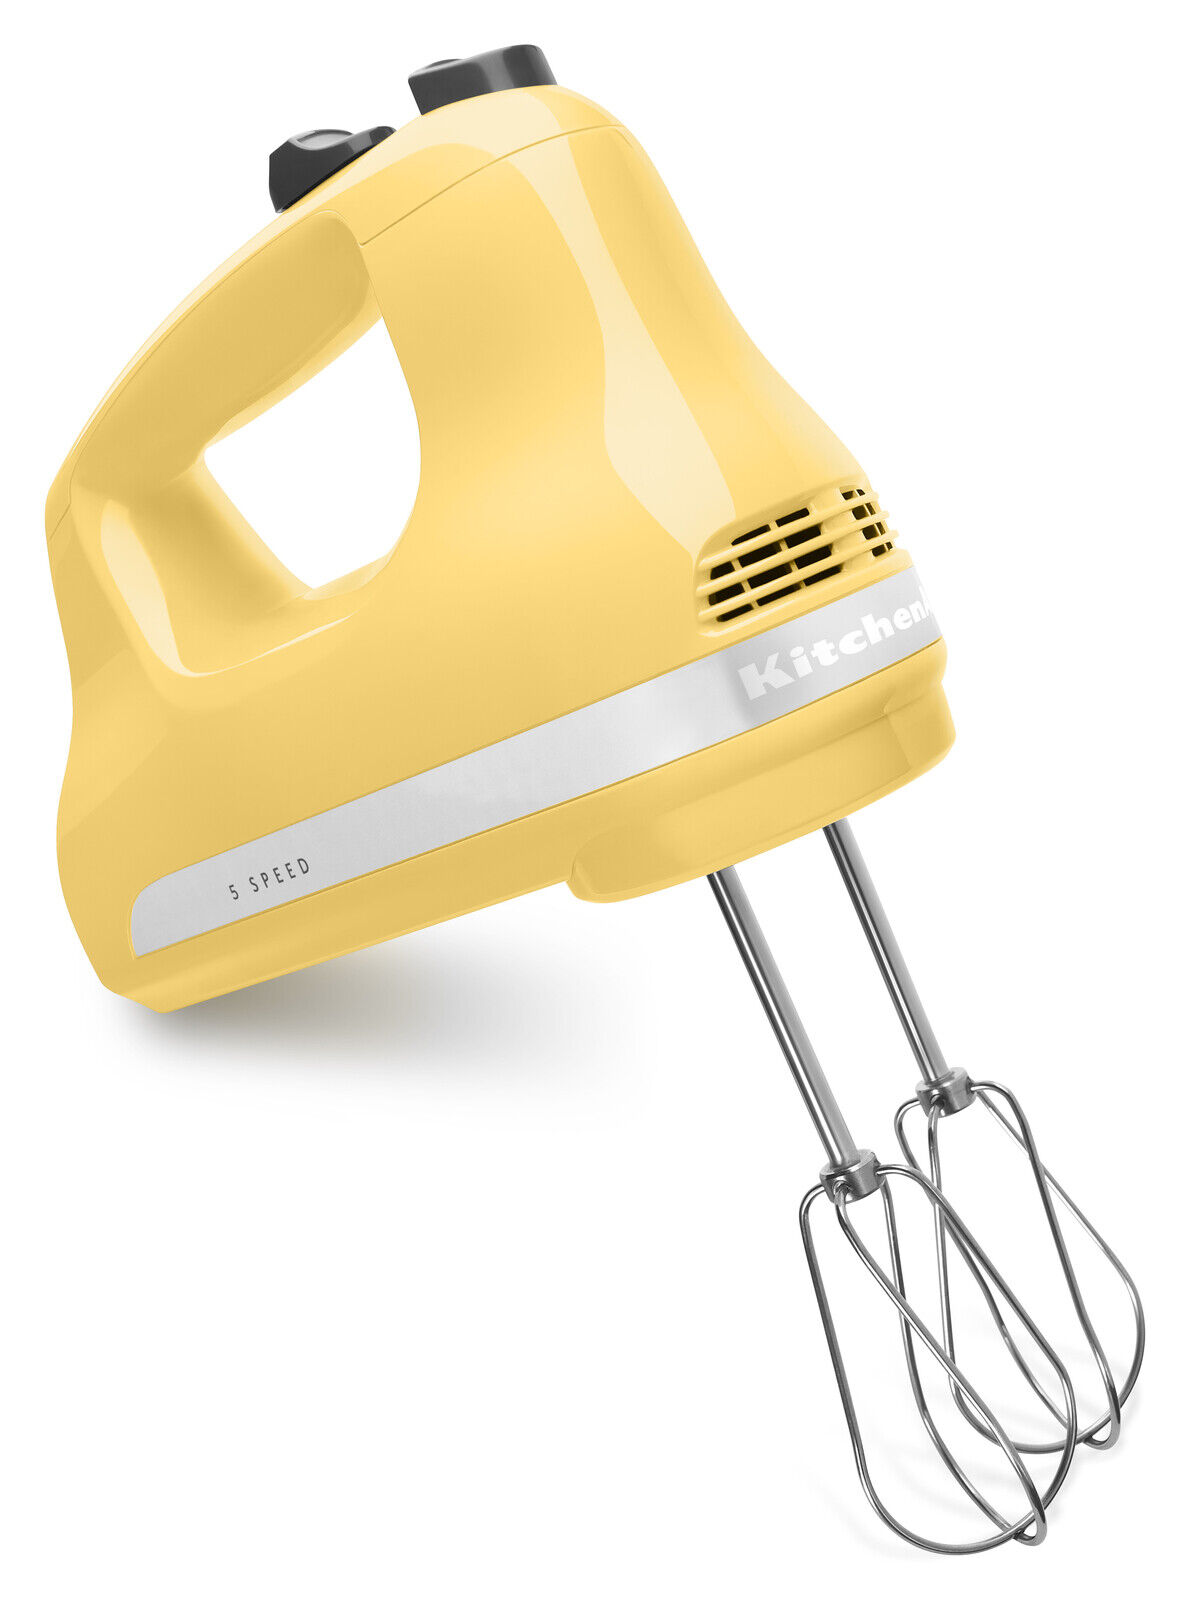 Small Hand Mixer Accessories Stainless Steel Turbo Beater 5-